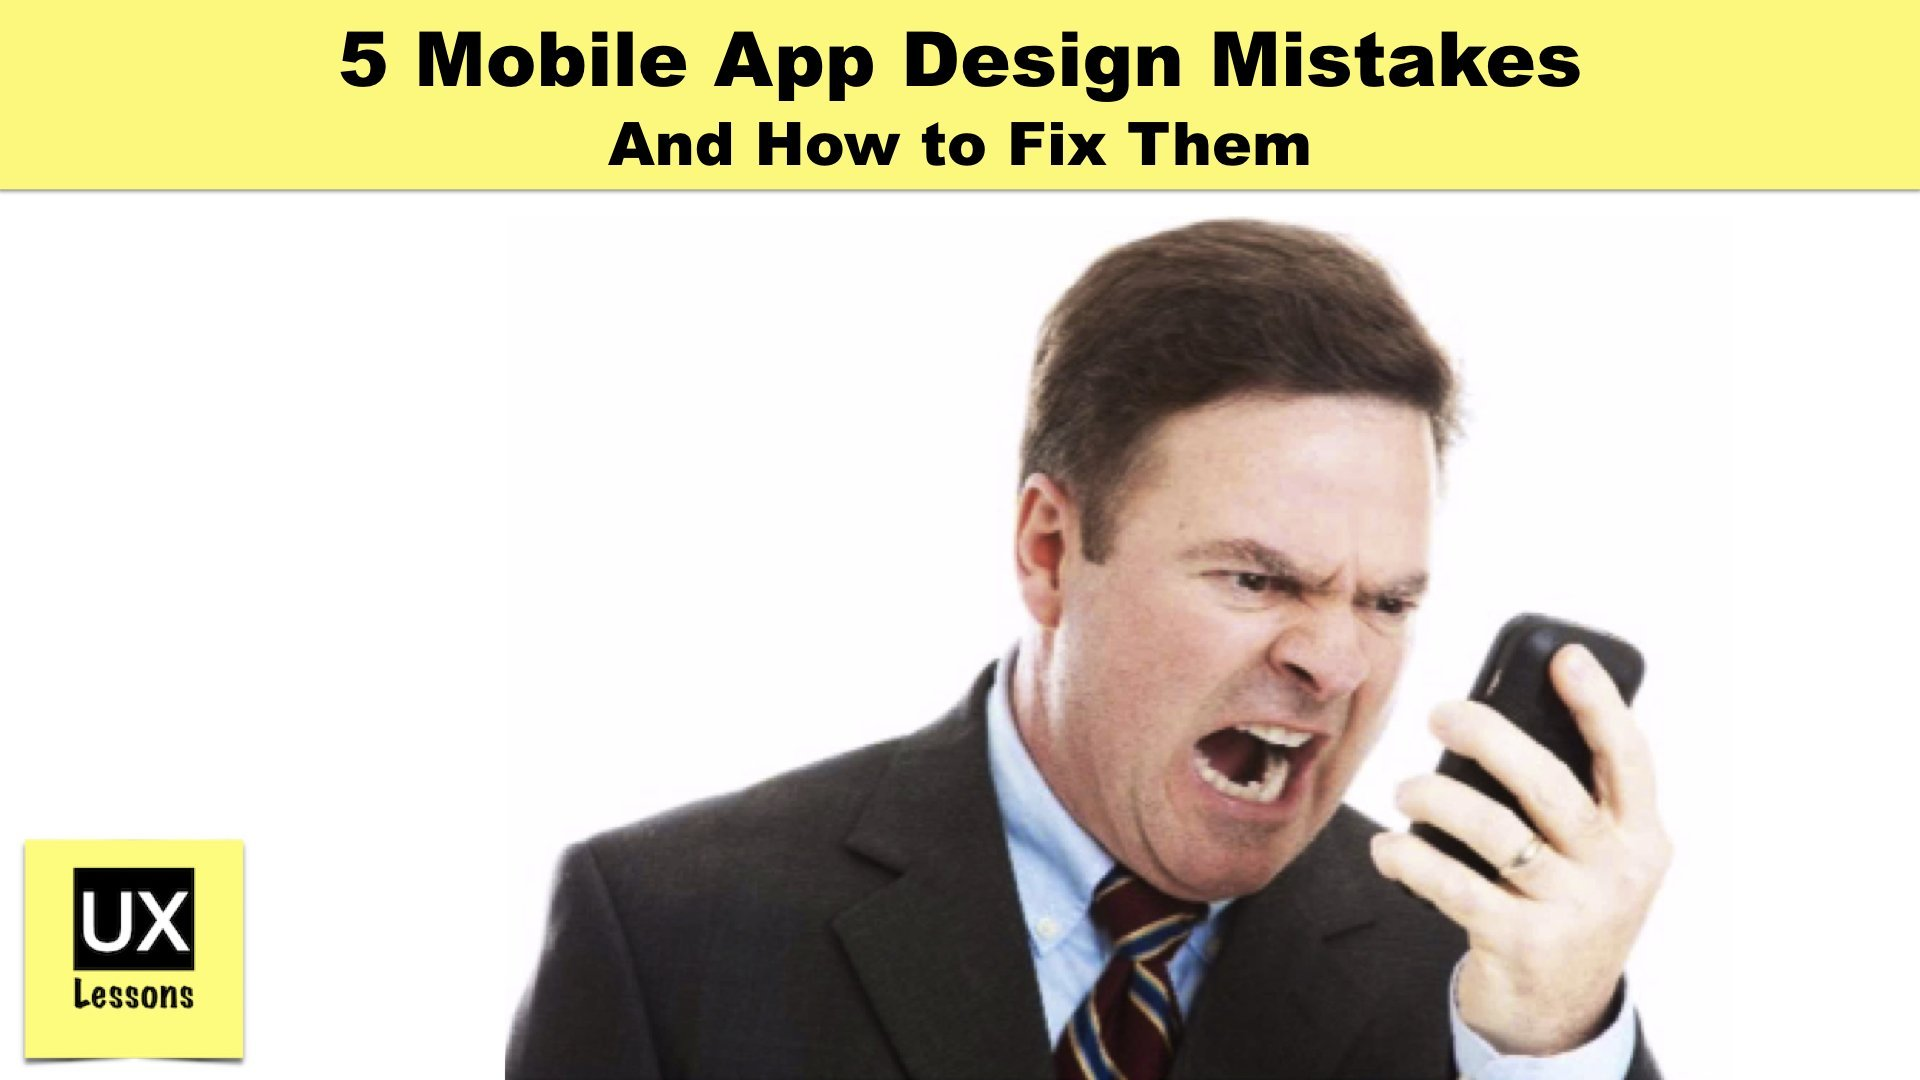 5 Mobile App Design Mistakes And How to Fix Them